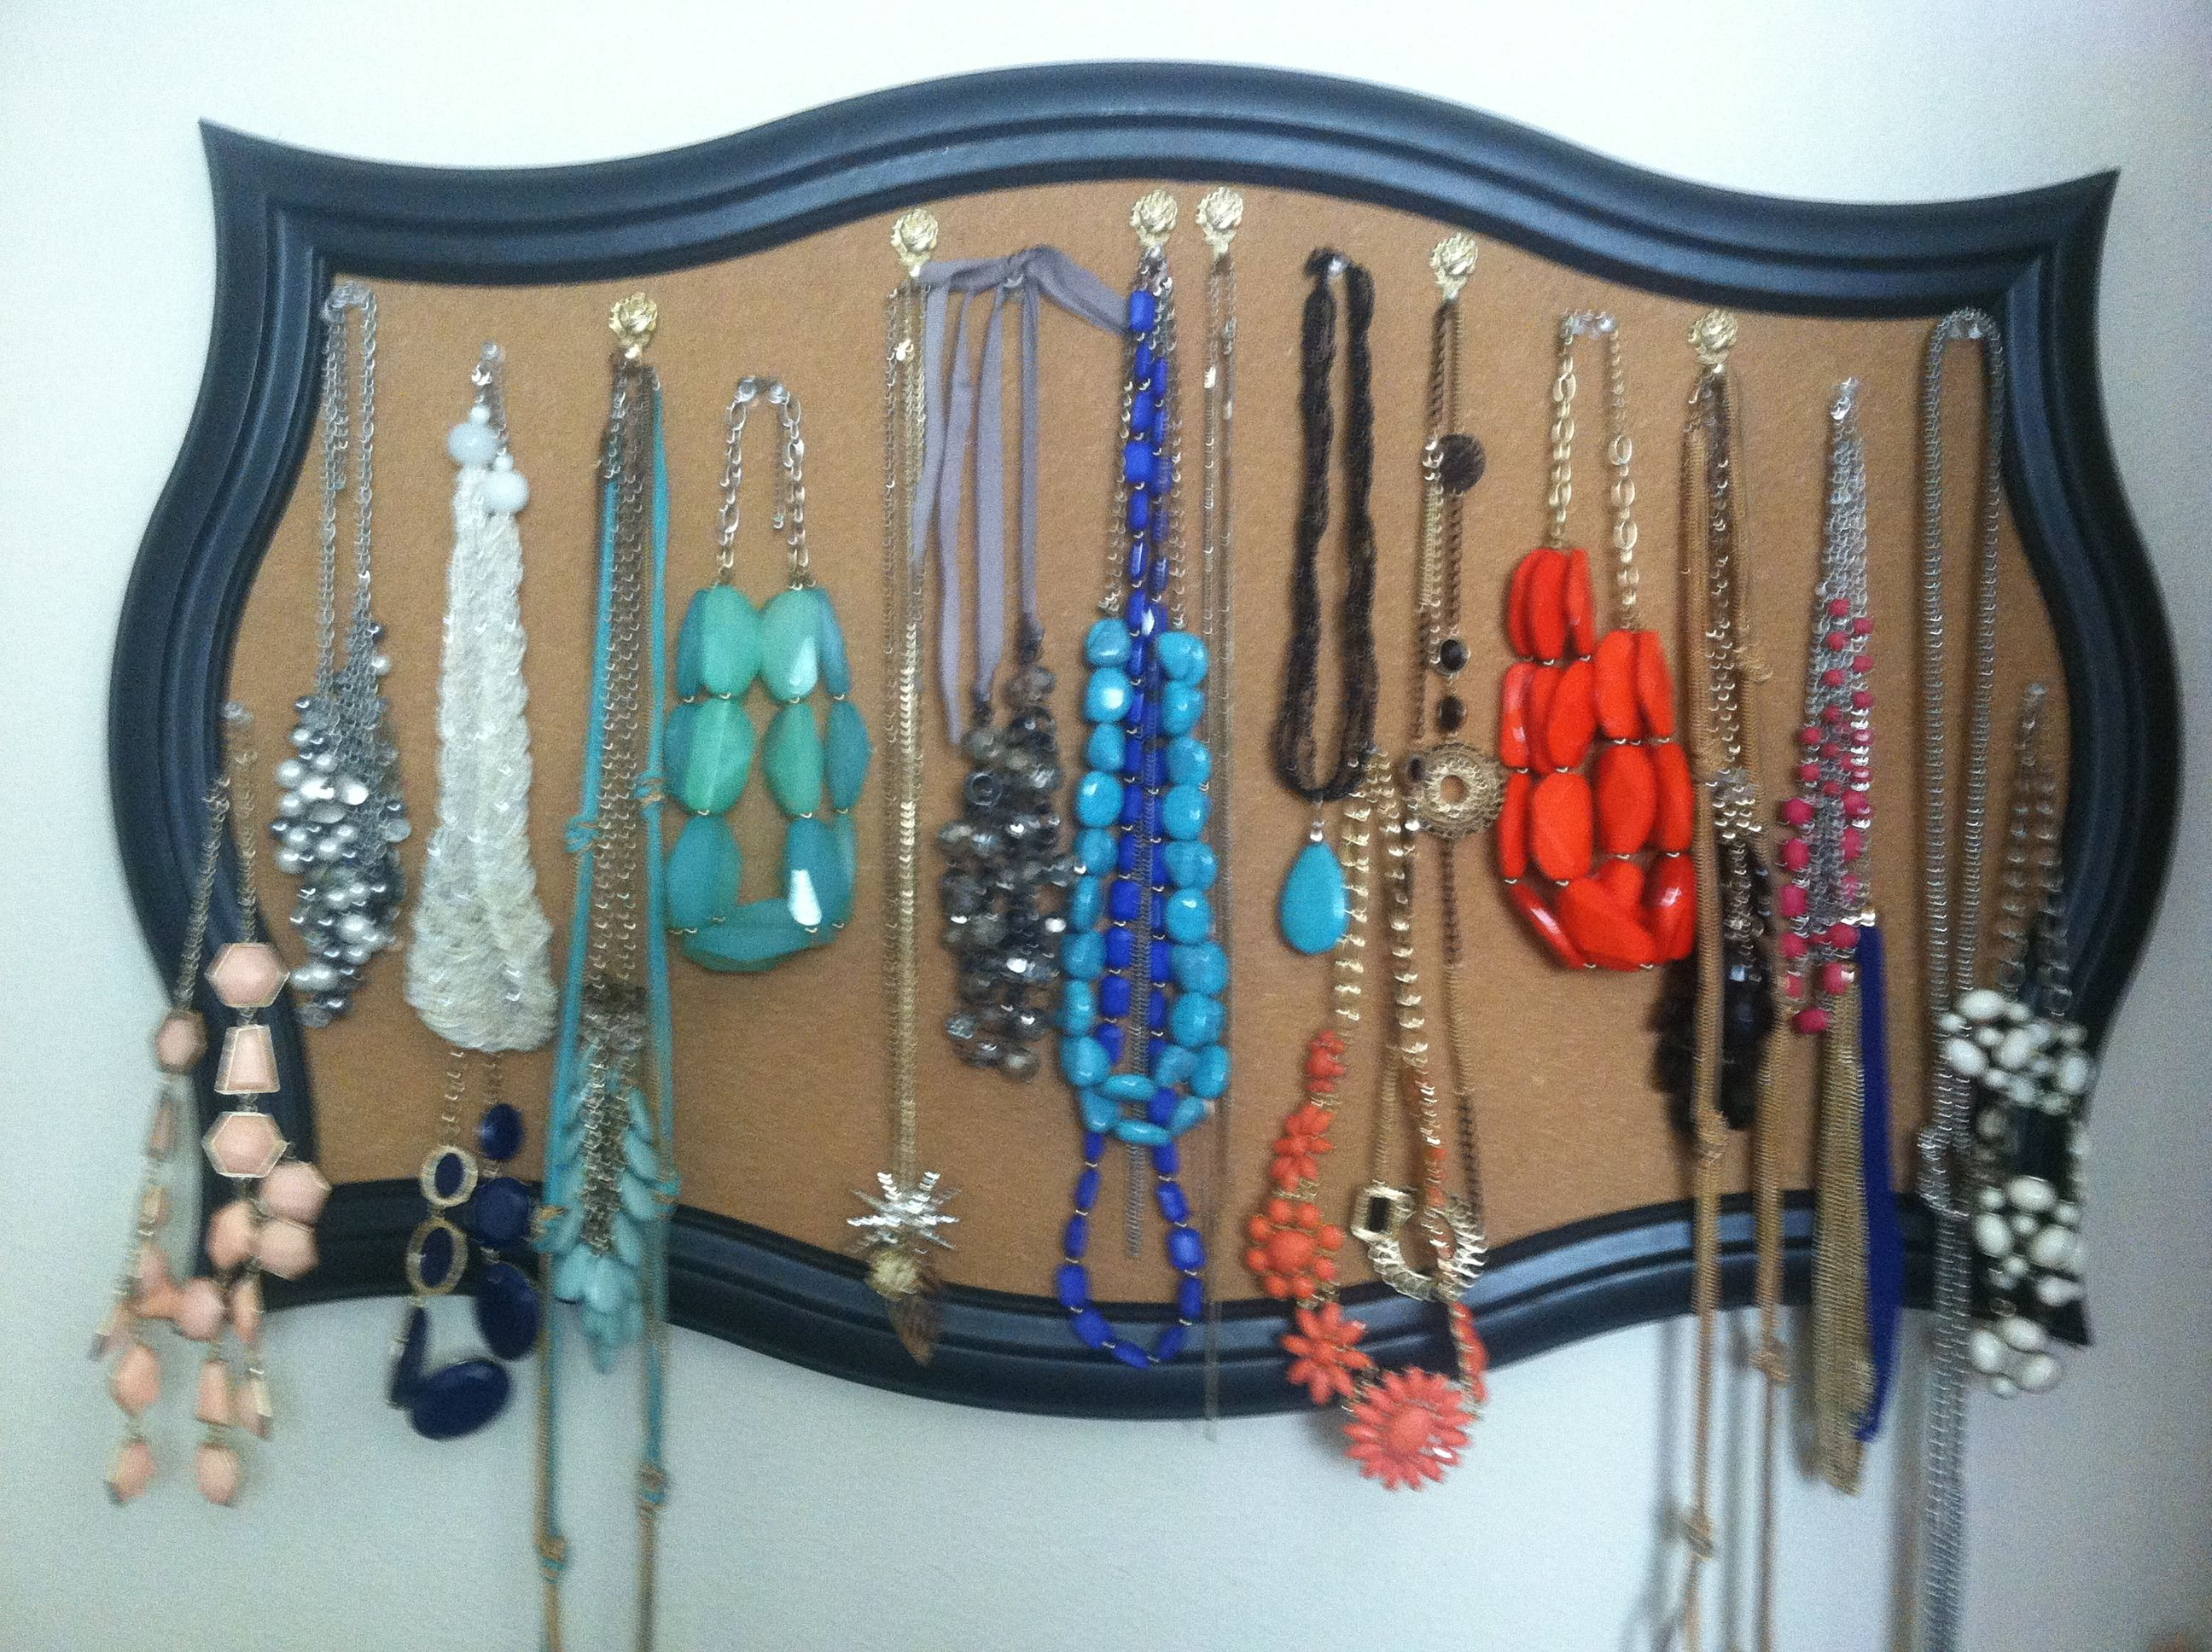 Necklace Storage Hanging Idea Using A Framed Cork Board And Push Pins To  Hold Jewelry.